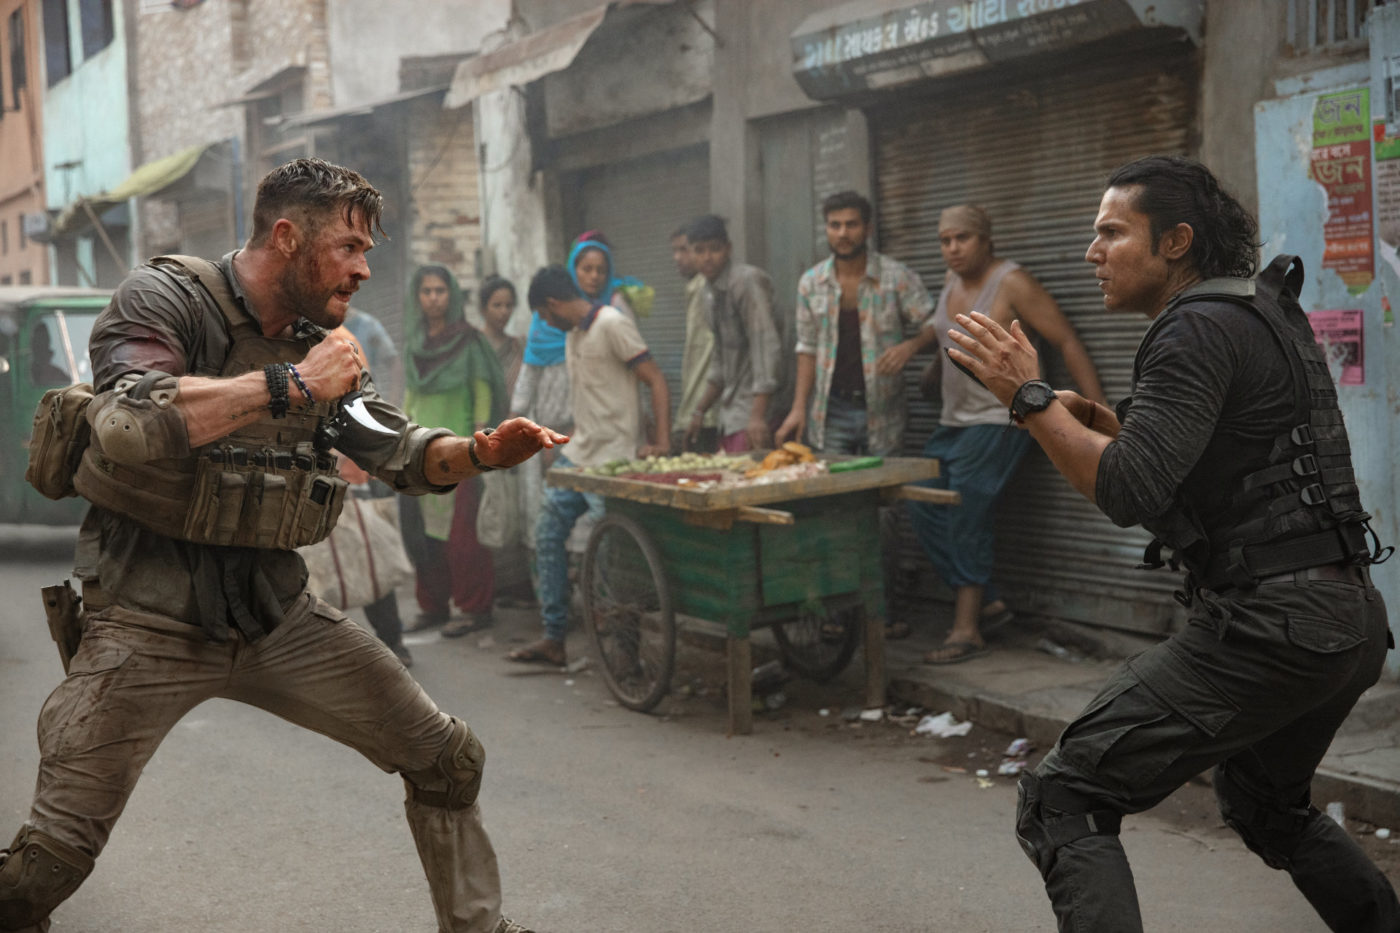 Extraction isn't quite as deep as it wants you to think it is, but it is certainly a better-than-average action thriller with some actual surprises and engaging situations.